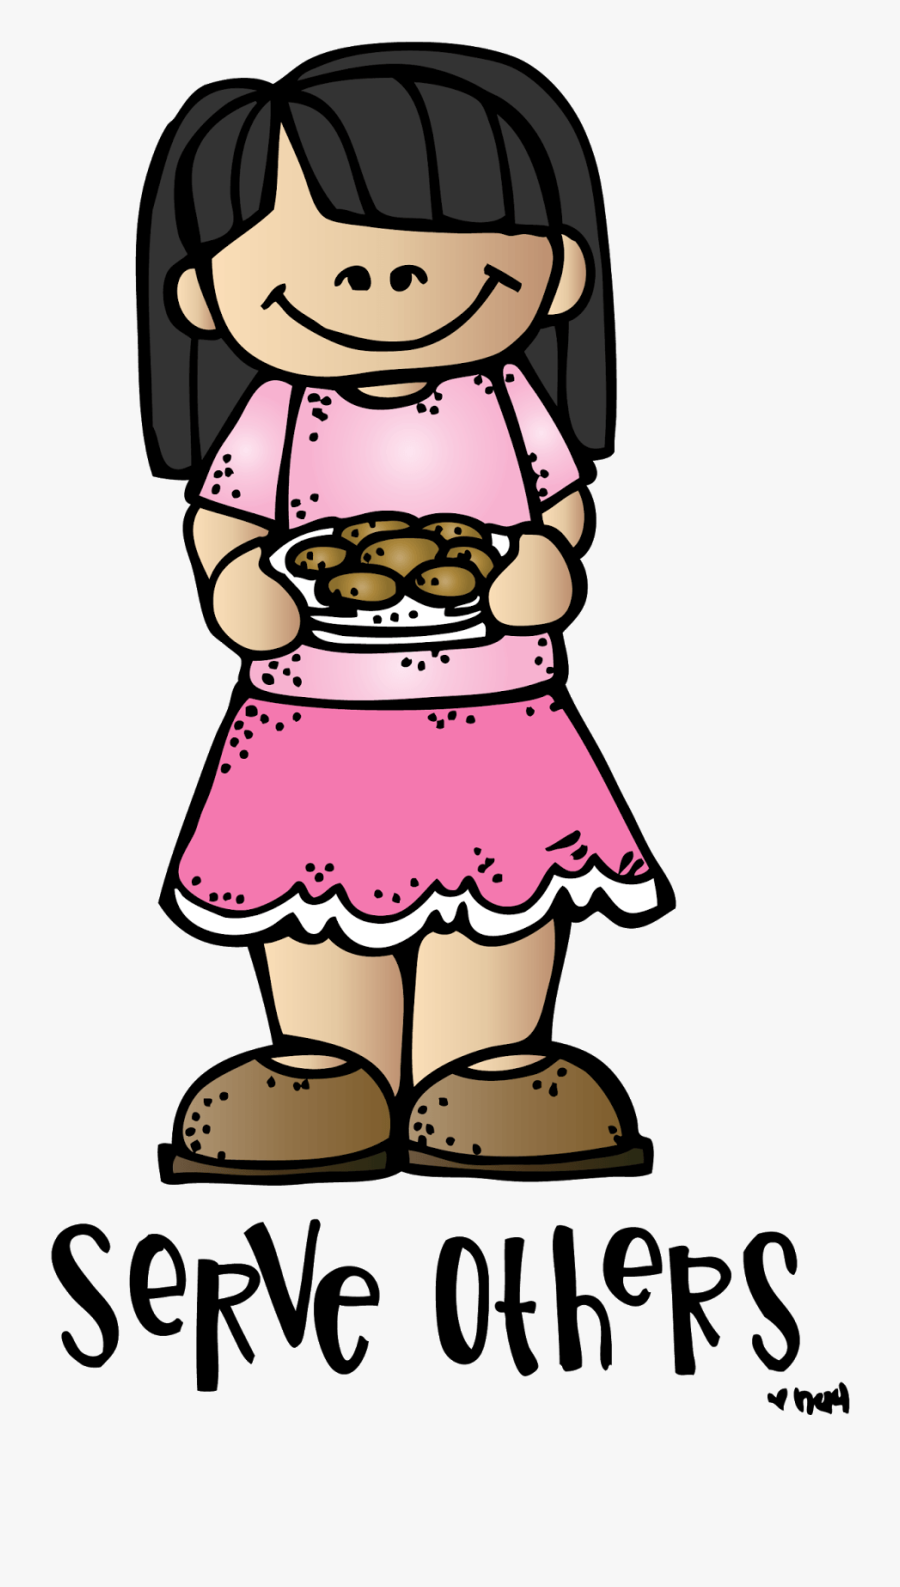 Showing Love To Others Clipart - Serve Others Clipart, Transparent Clipart